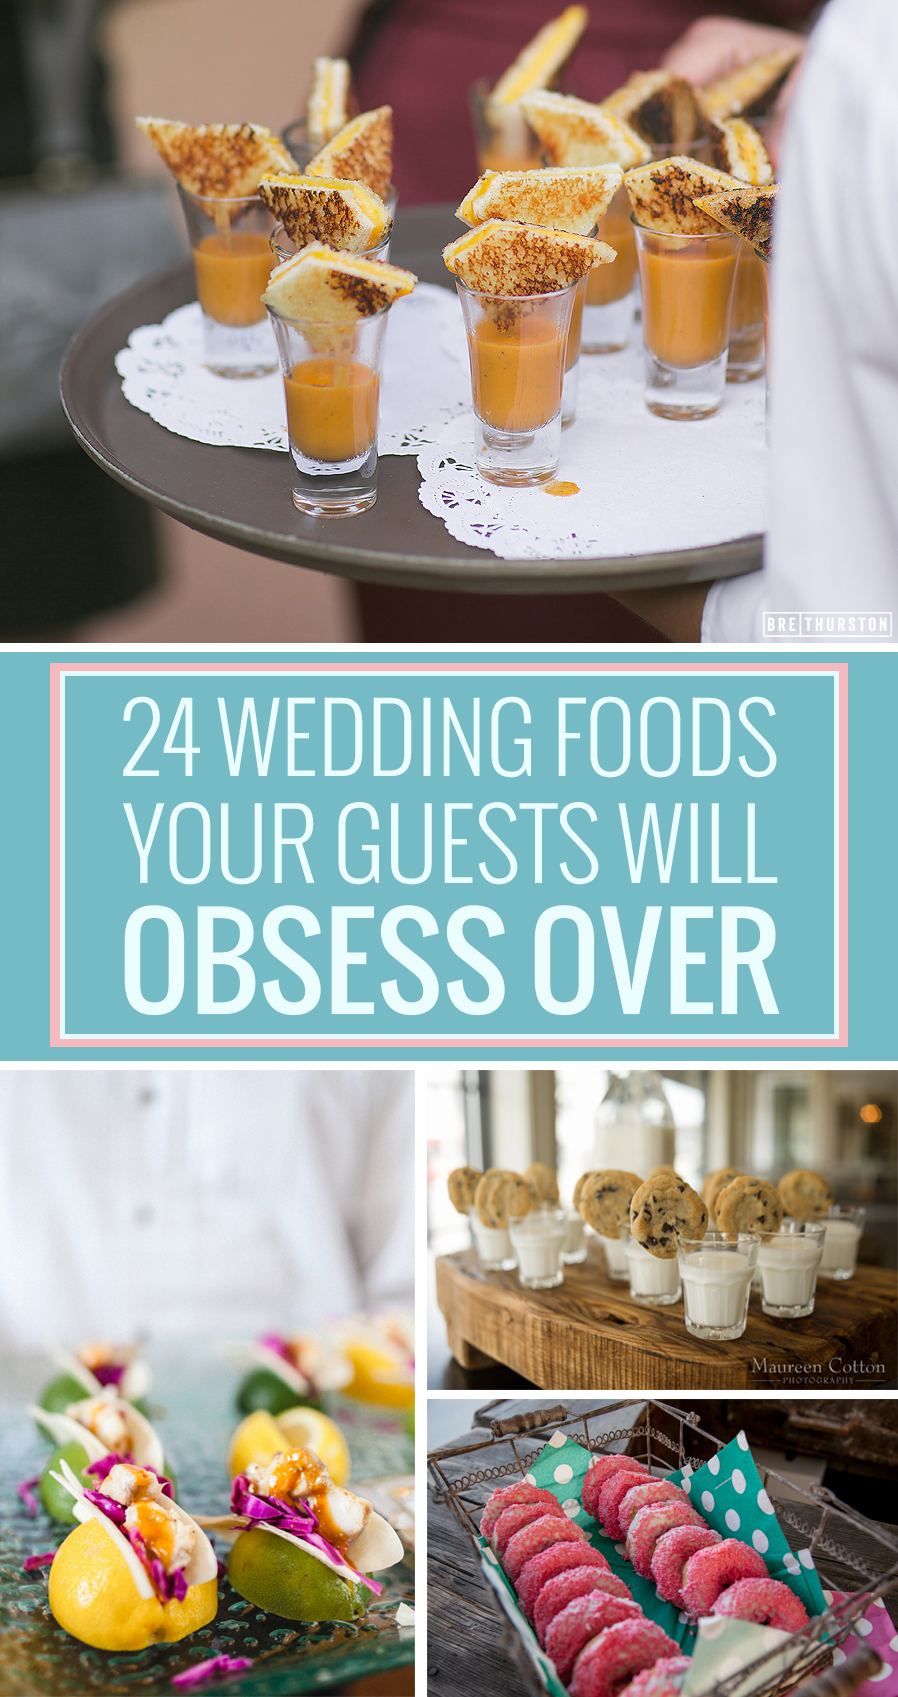 Awesome 24 Unconventional Wedding Foods Your Guests Will Obsess Over | HuffPost